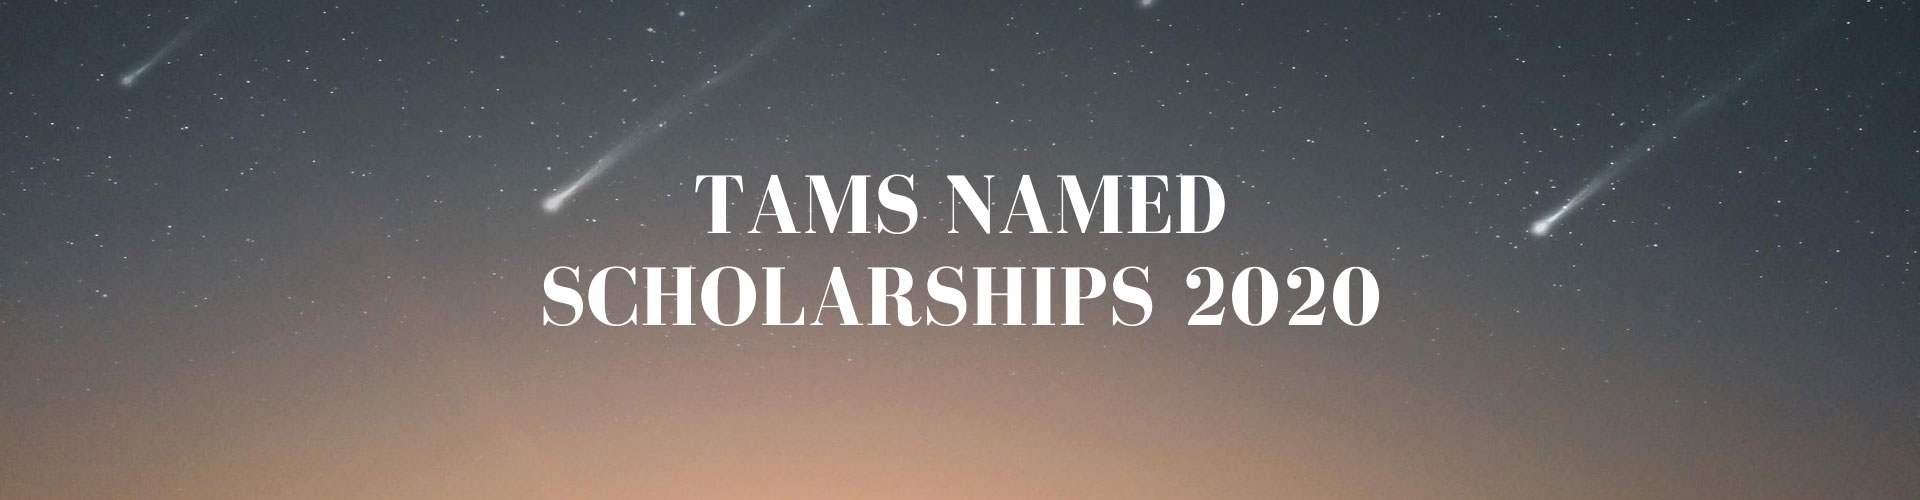 2020 TAMS Named Scholarship Recipients